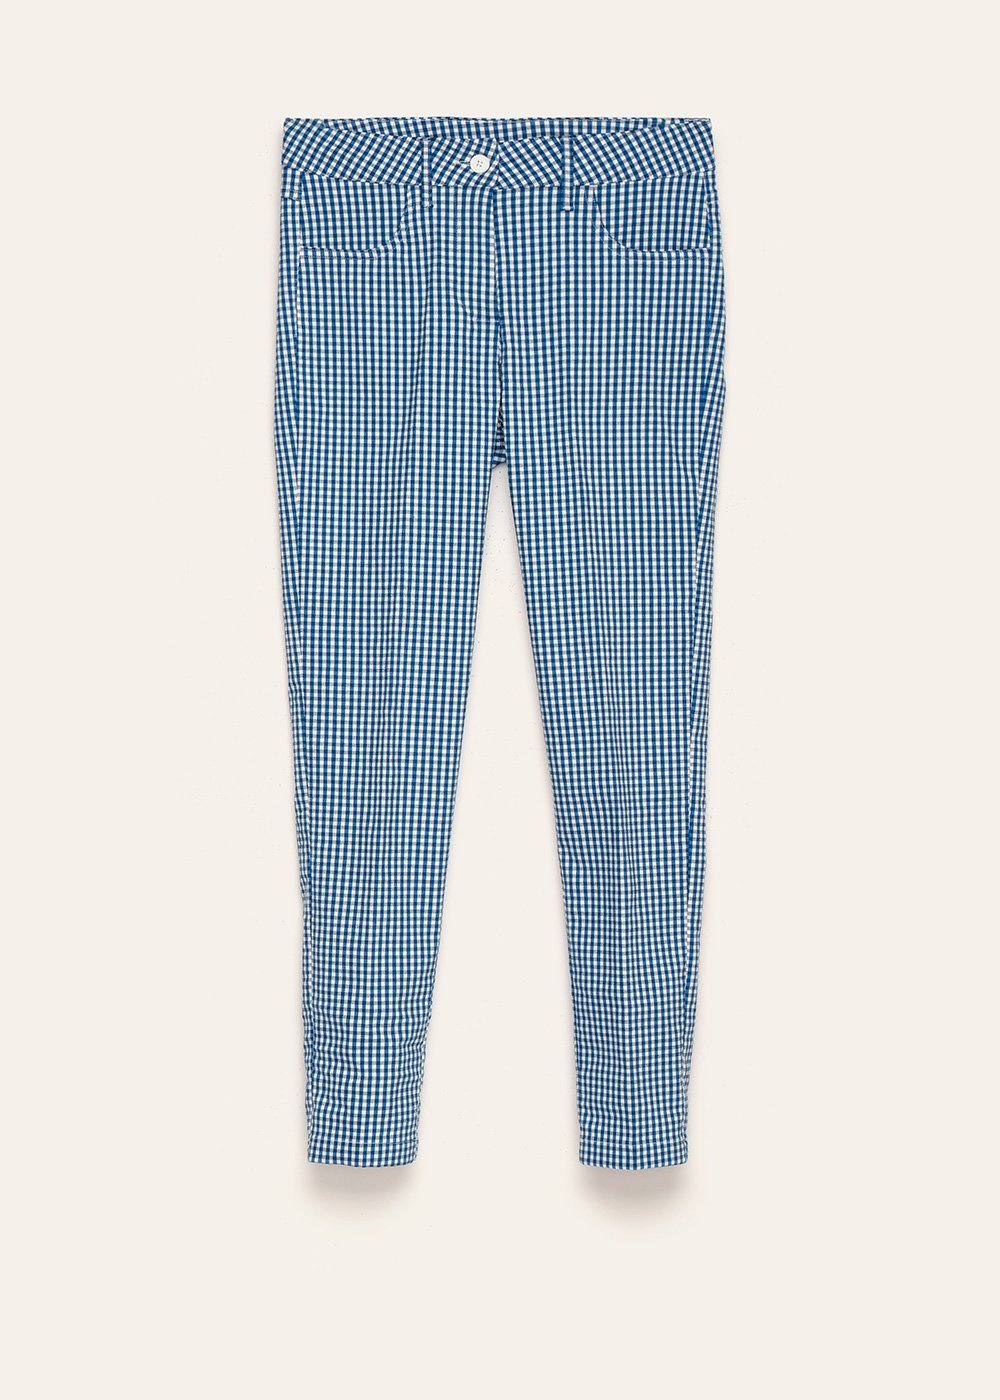 Kate trousers with micro check pattern in shades of blue depths - Abisso White / Fantasia - Woman